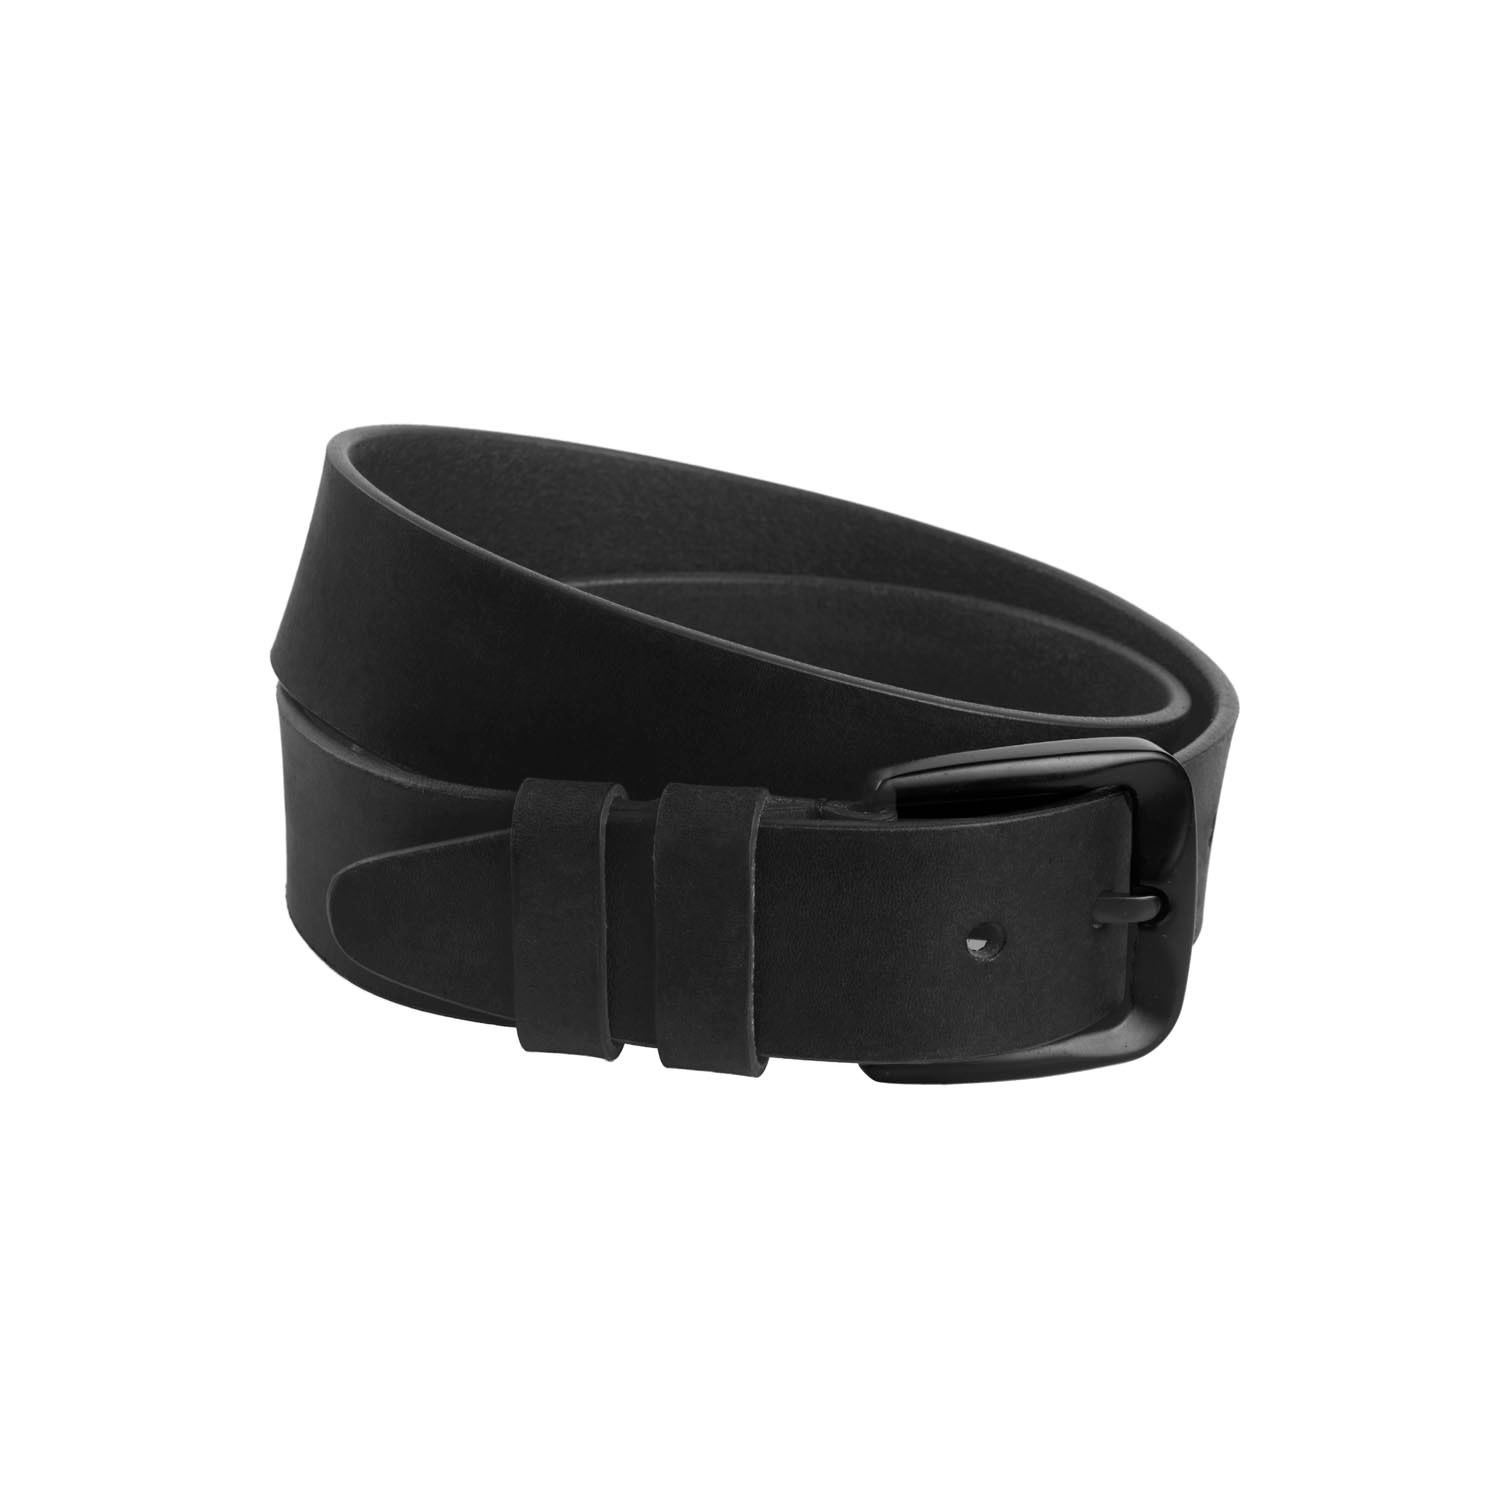 Chesterfield Chesterfield Allendale Leather Belt Black